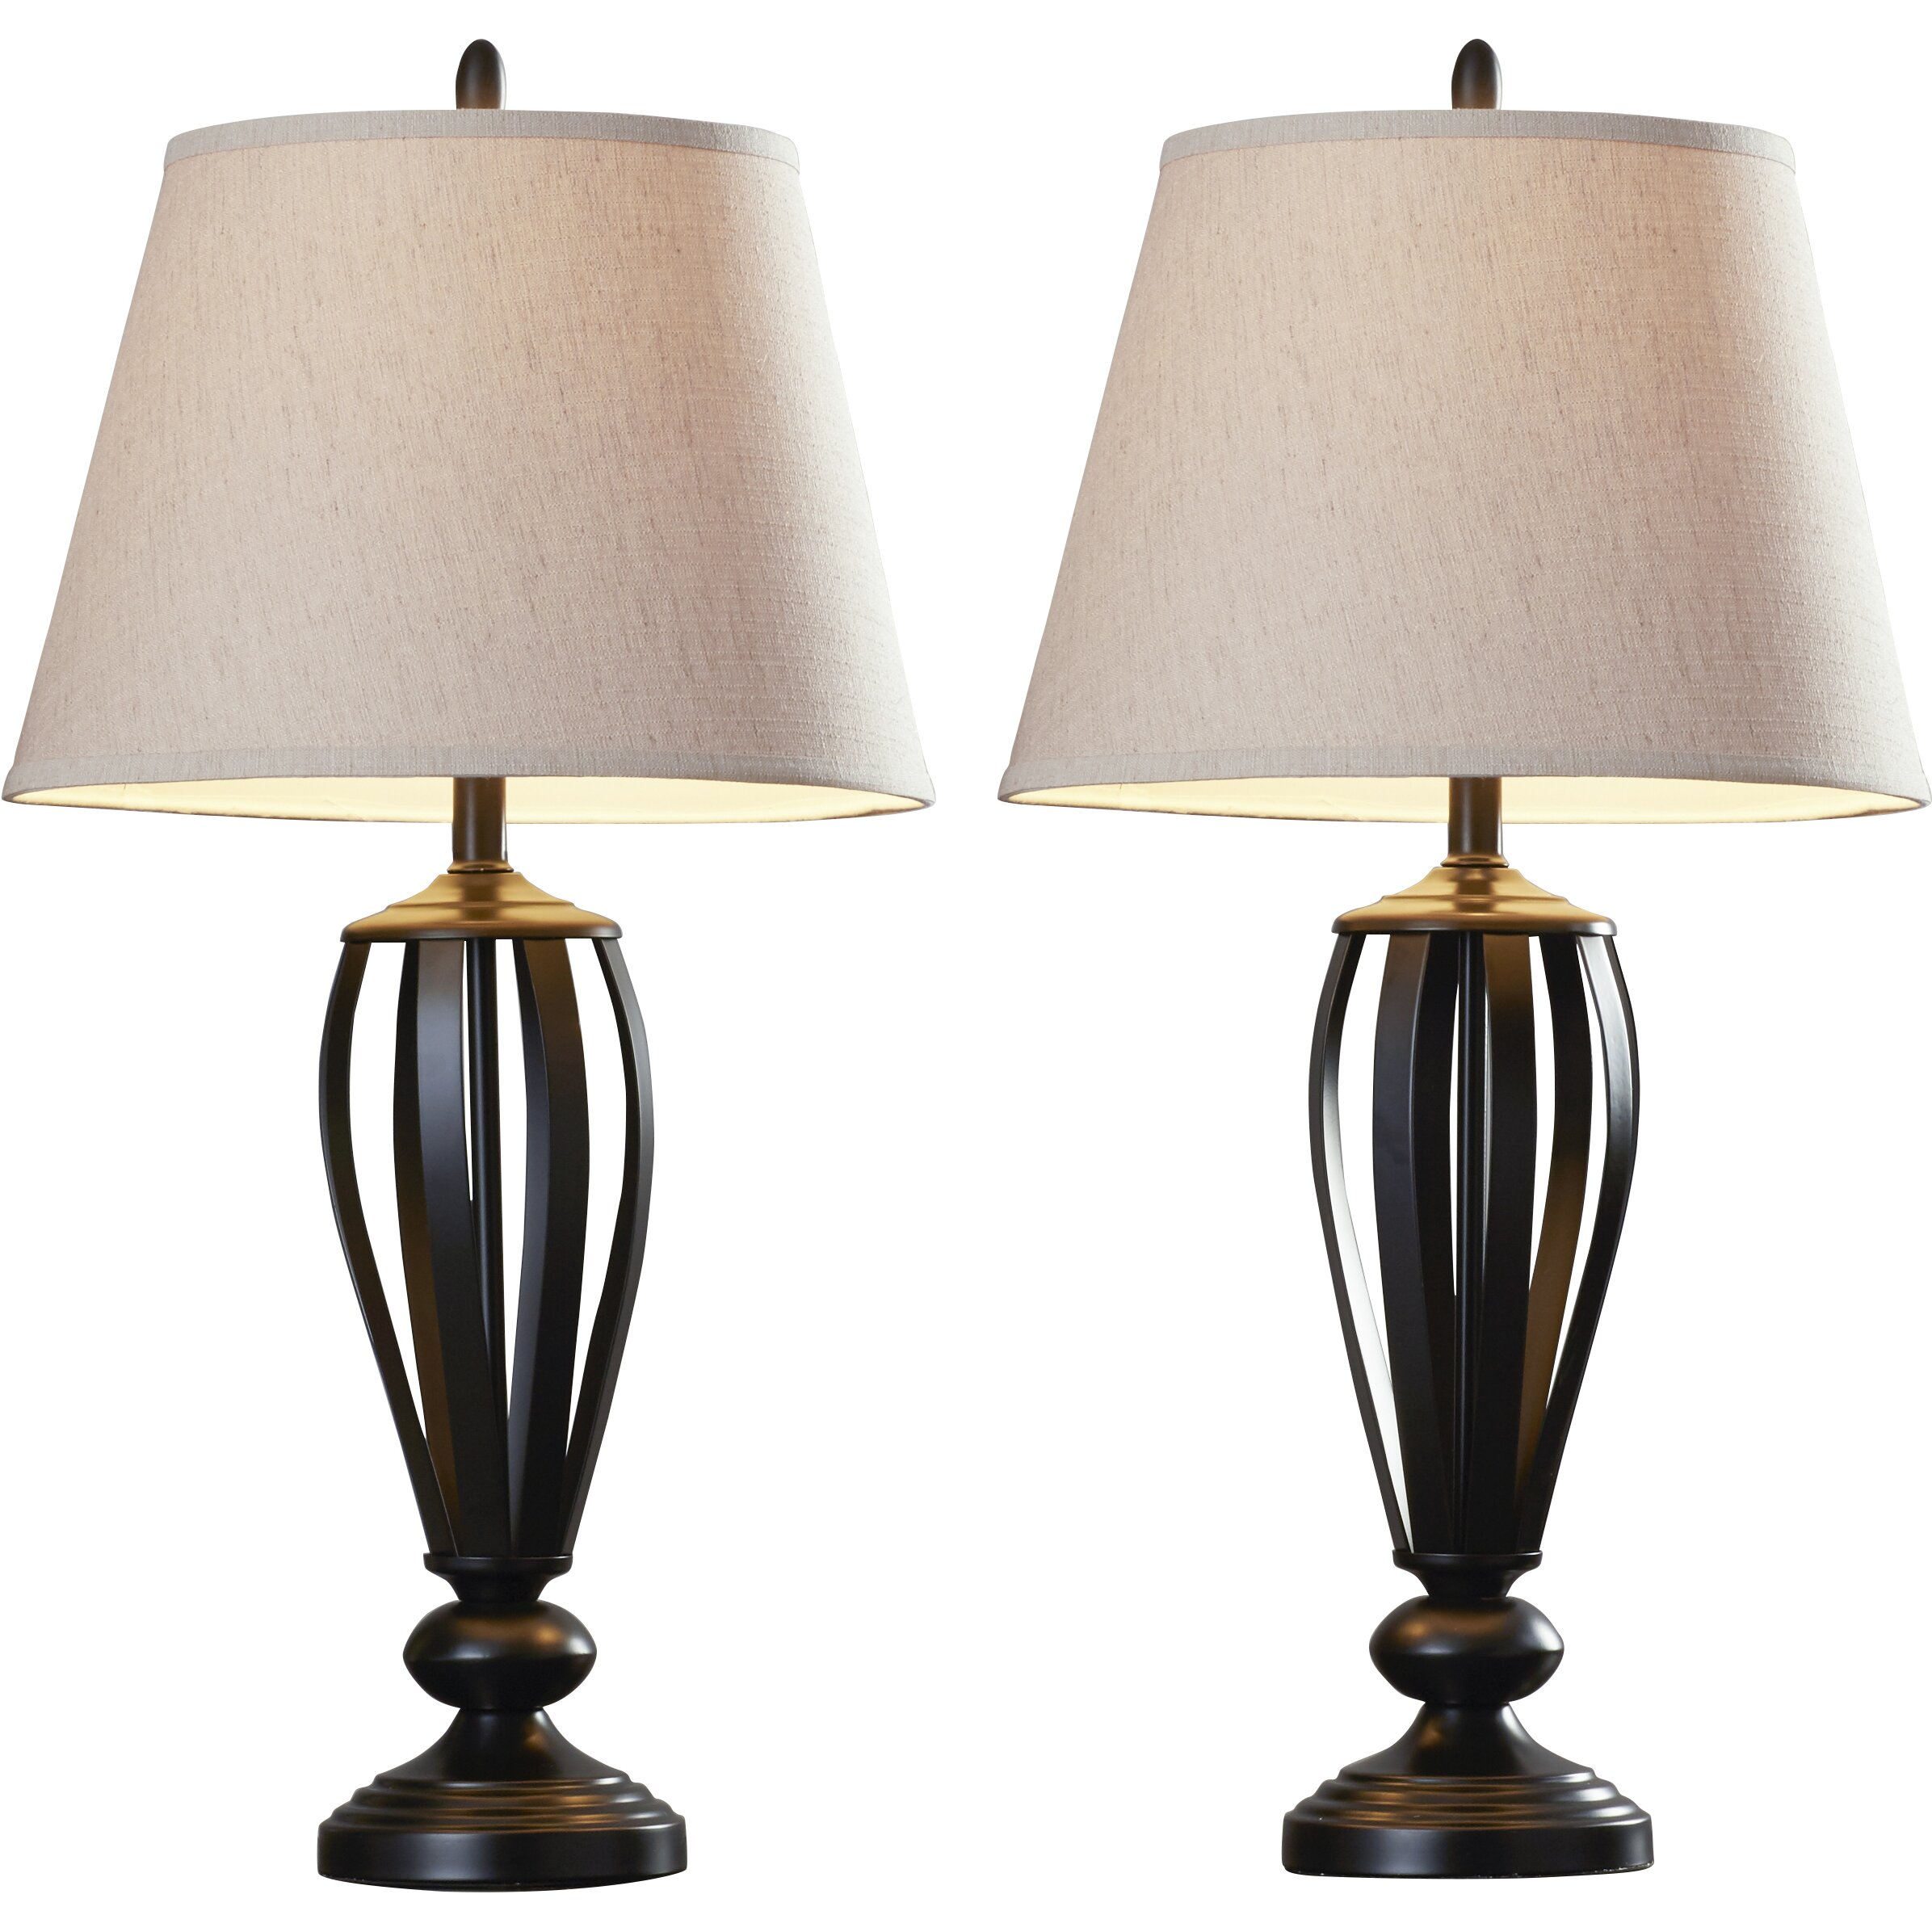 "Wayfair Lights: Three Posts Gainseville 29.6"" Table Lamps & Reviews"